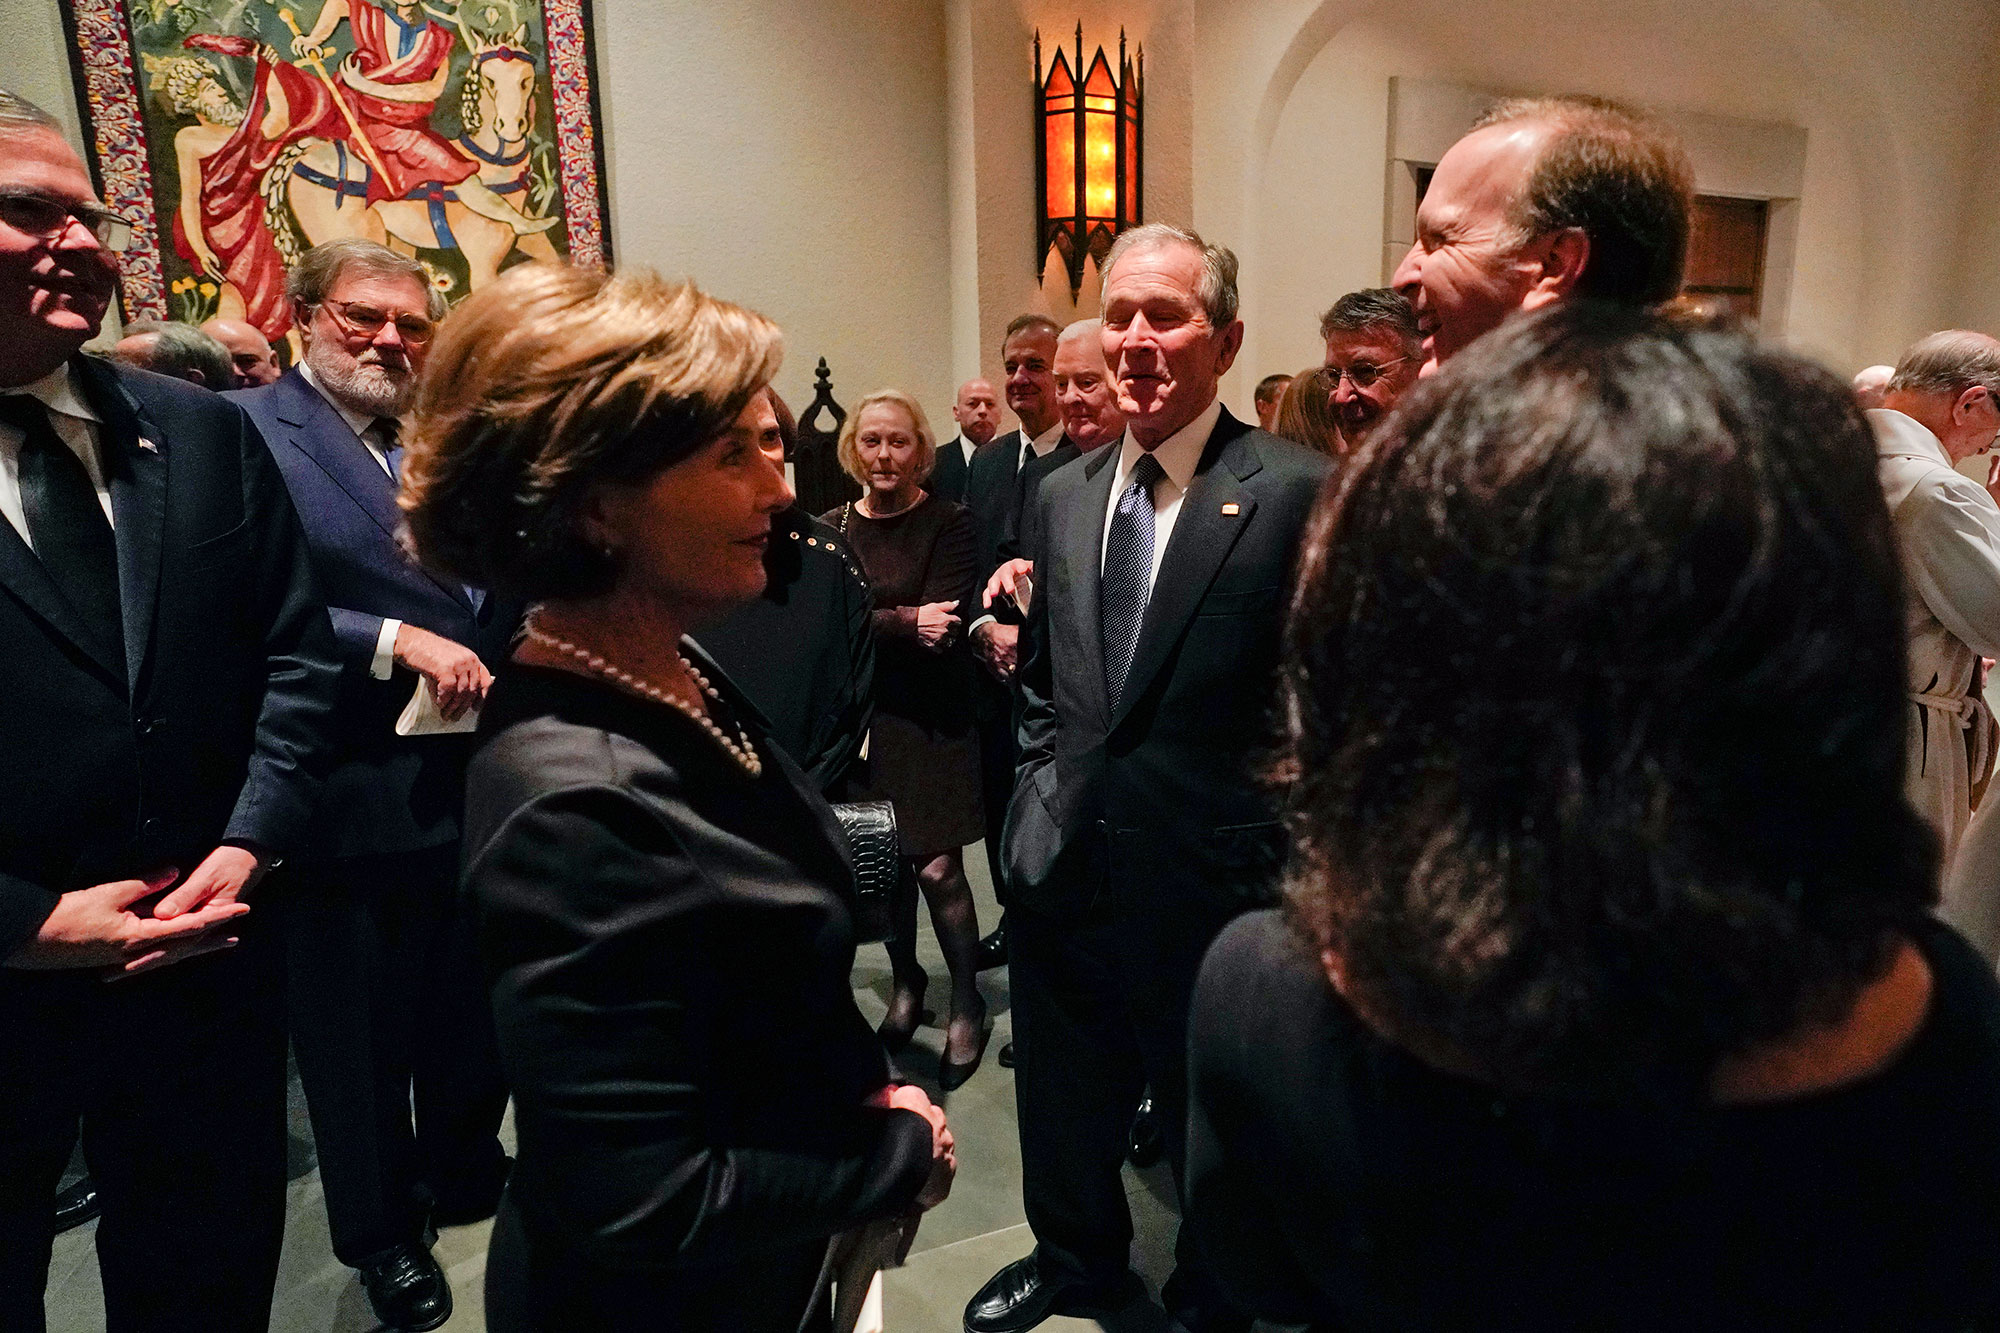 <div class='meta'><div class='origin-logo' data-origin='none'></div><span class='caption-text' data-credit='David J. Phillip, Pool/AP Photo'>Former President George W. Bush and Laura Bush talk with Neil Bush and his wife Maria, right, after a funeral service for former President George H.W. Bush.</span></div>